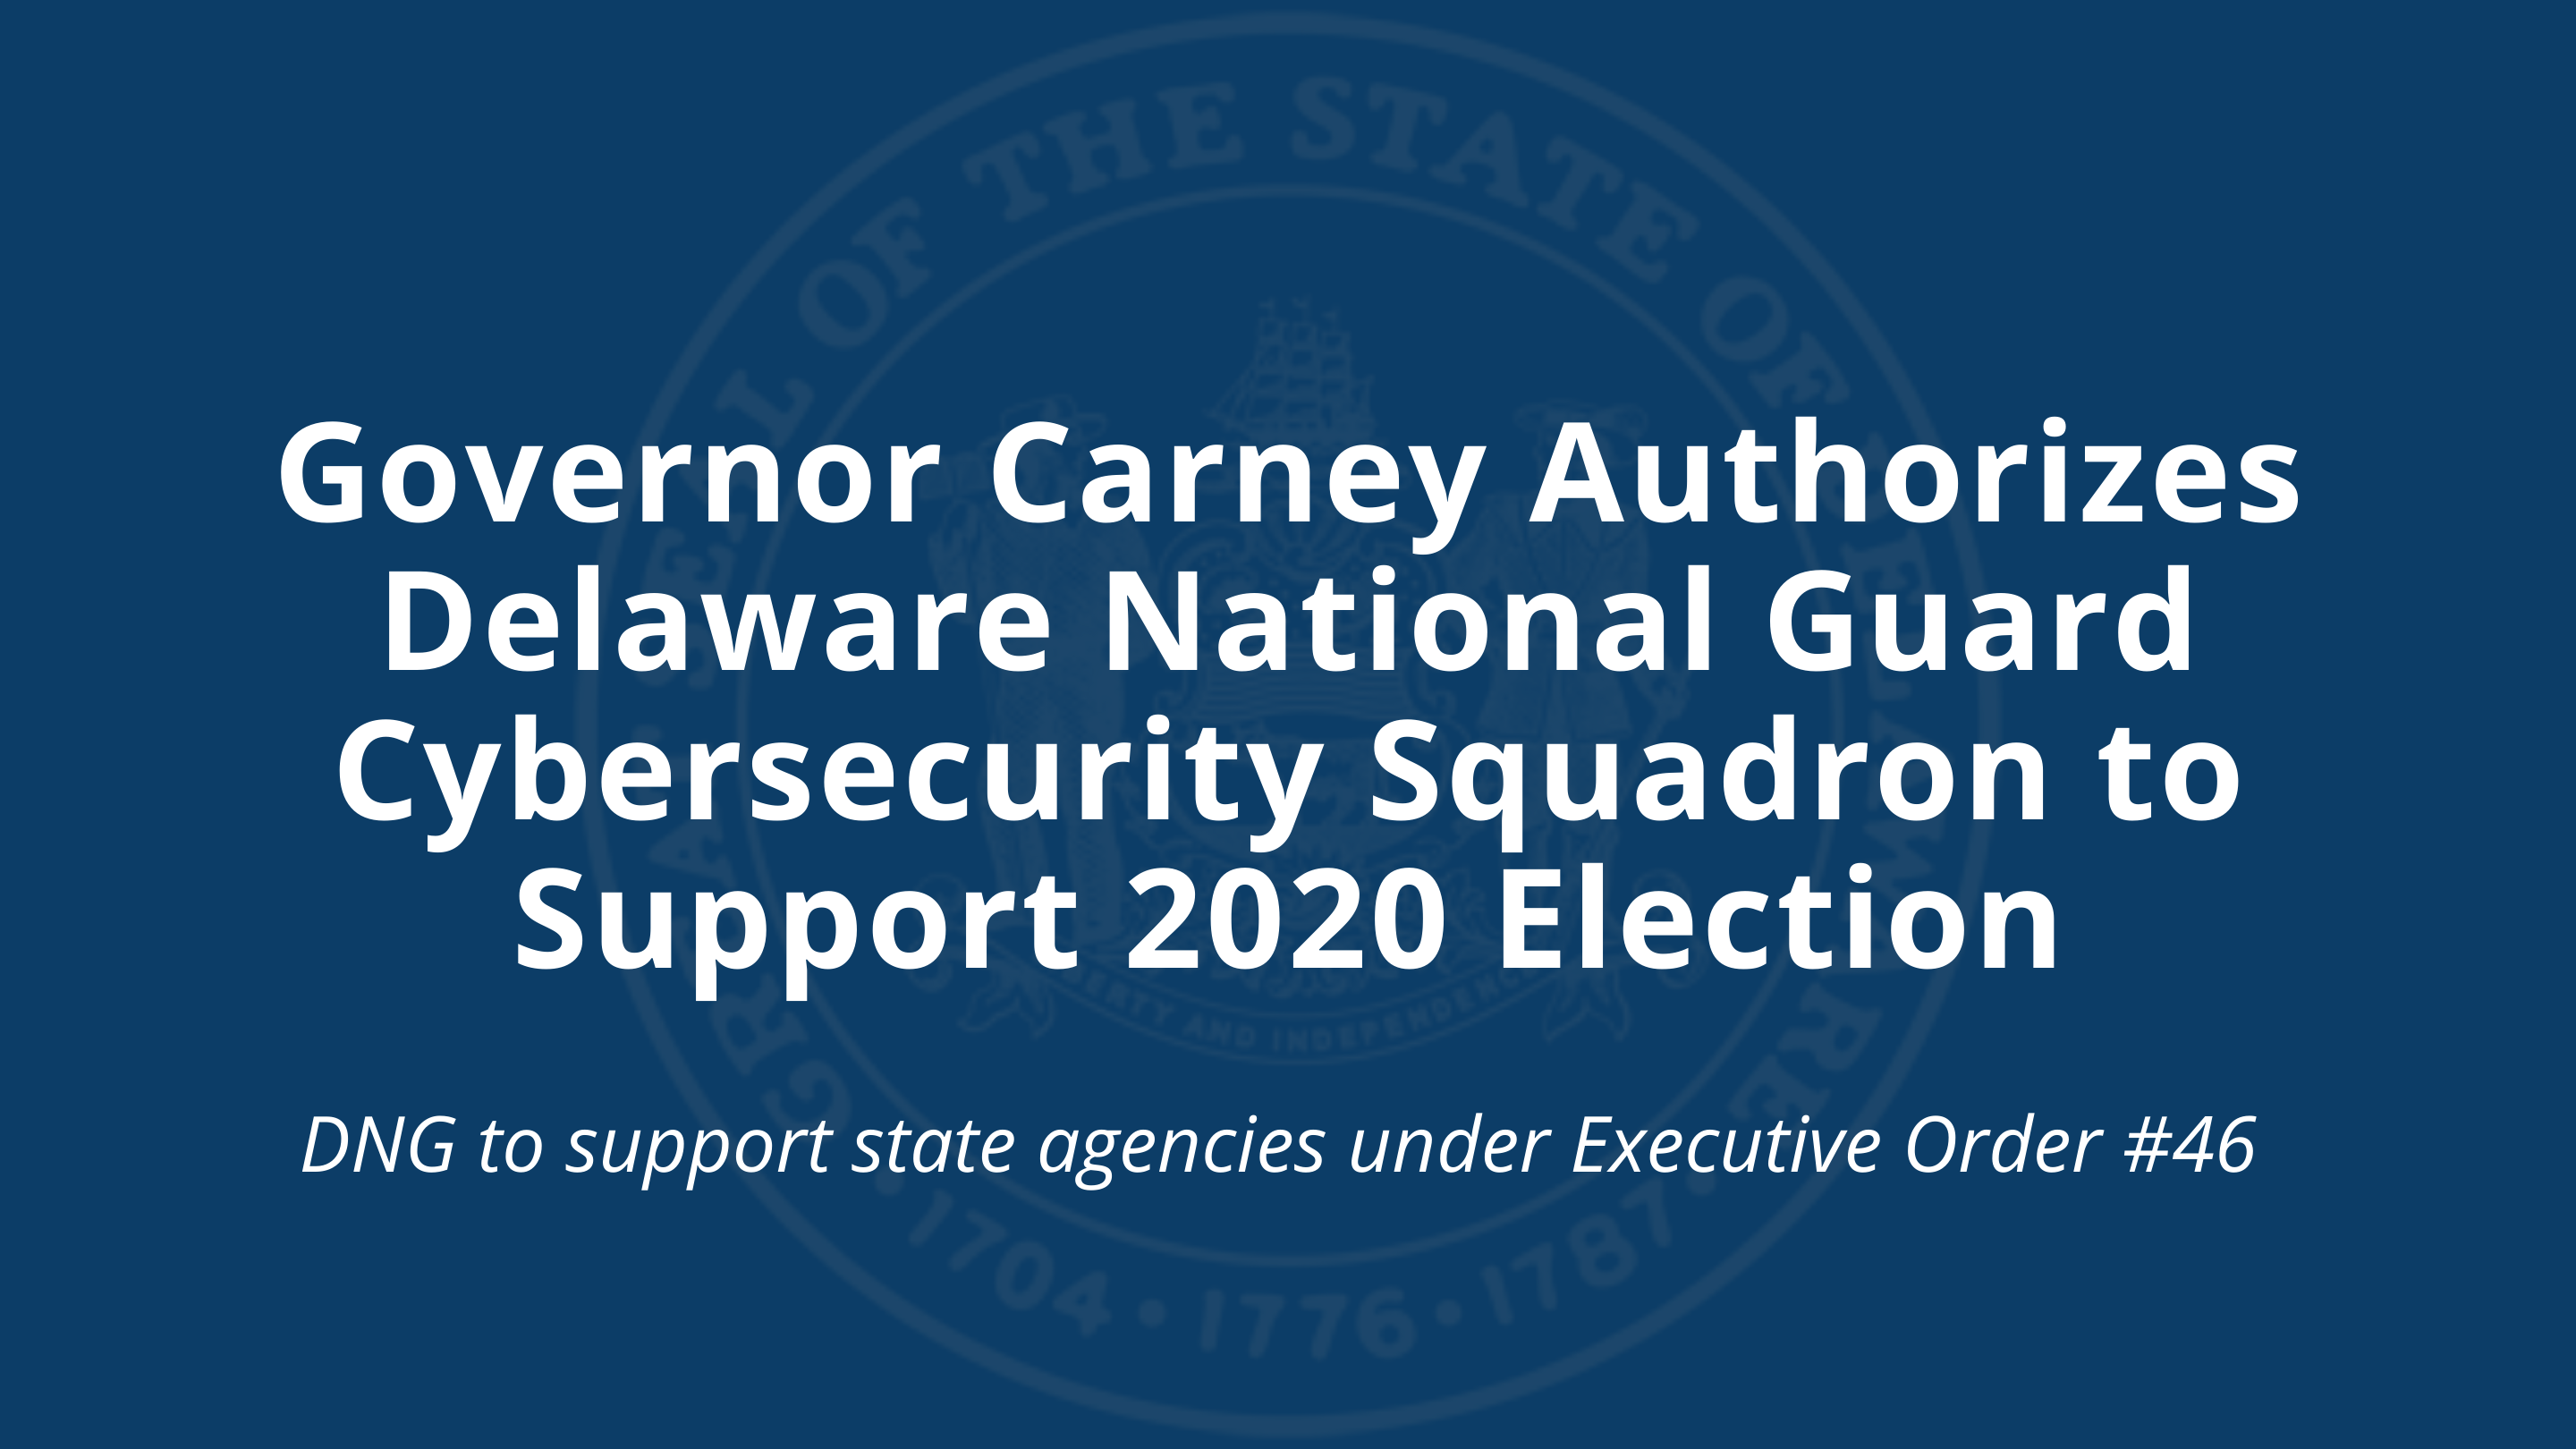 Governor Carney Authorizes Delaware National Guard Cybersecurity Squadron to Support 2020 Election